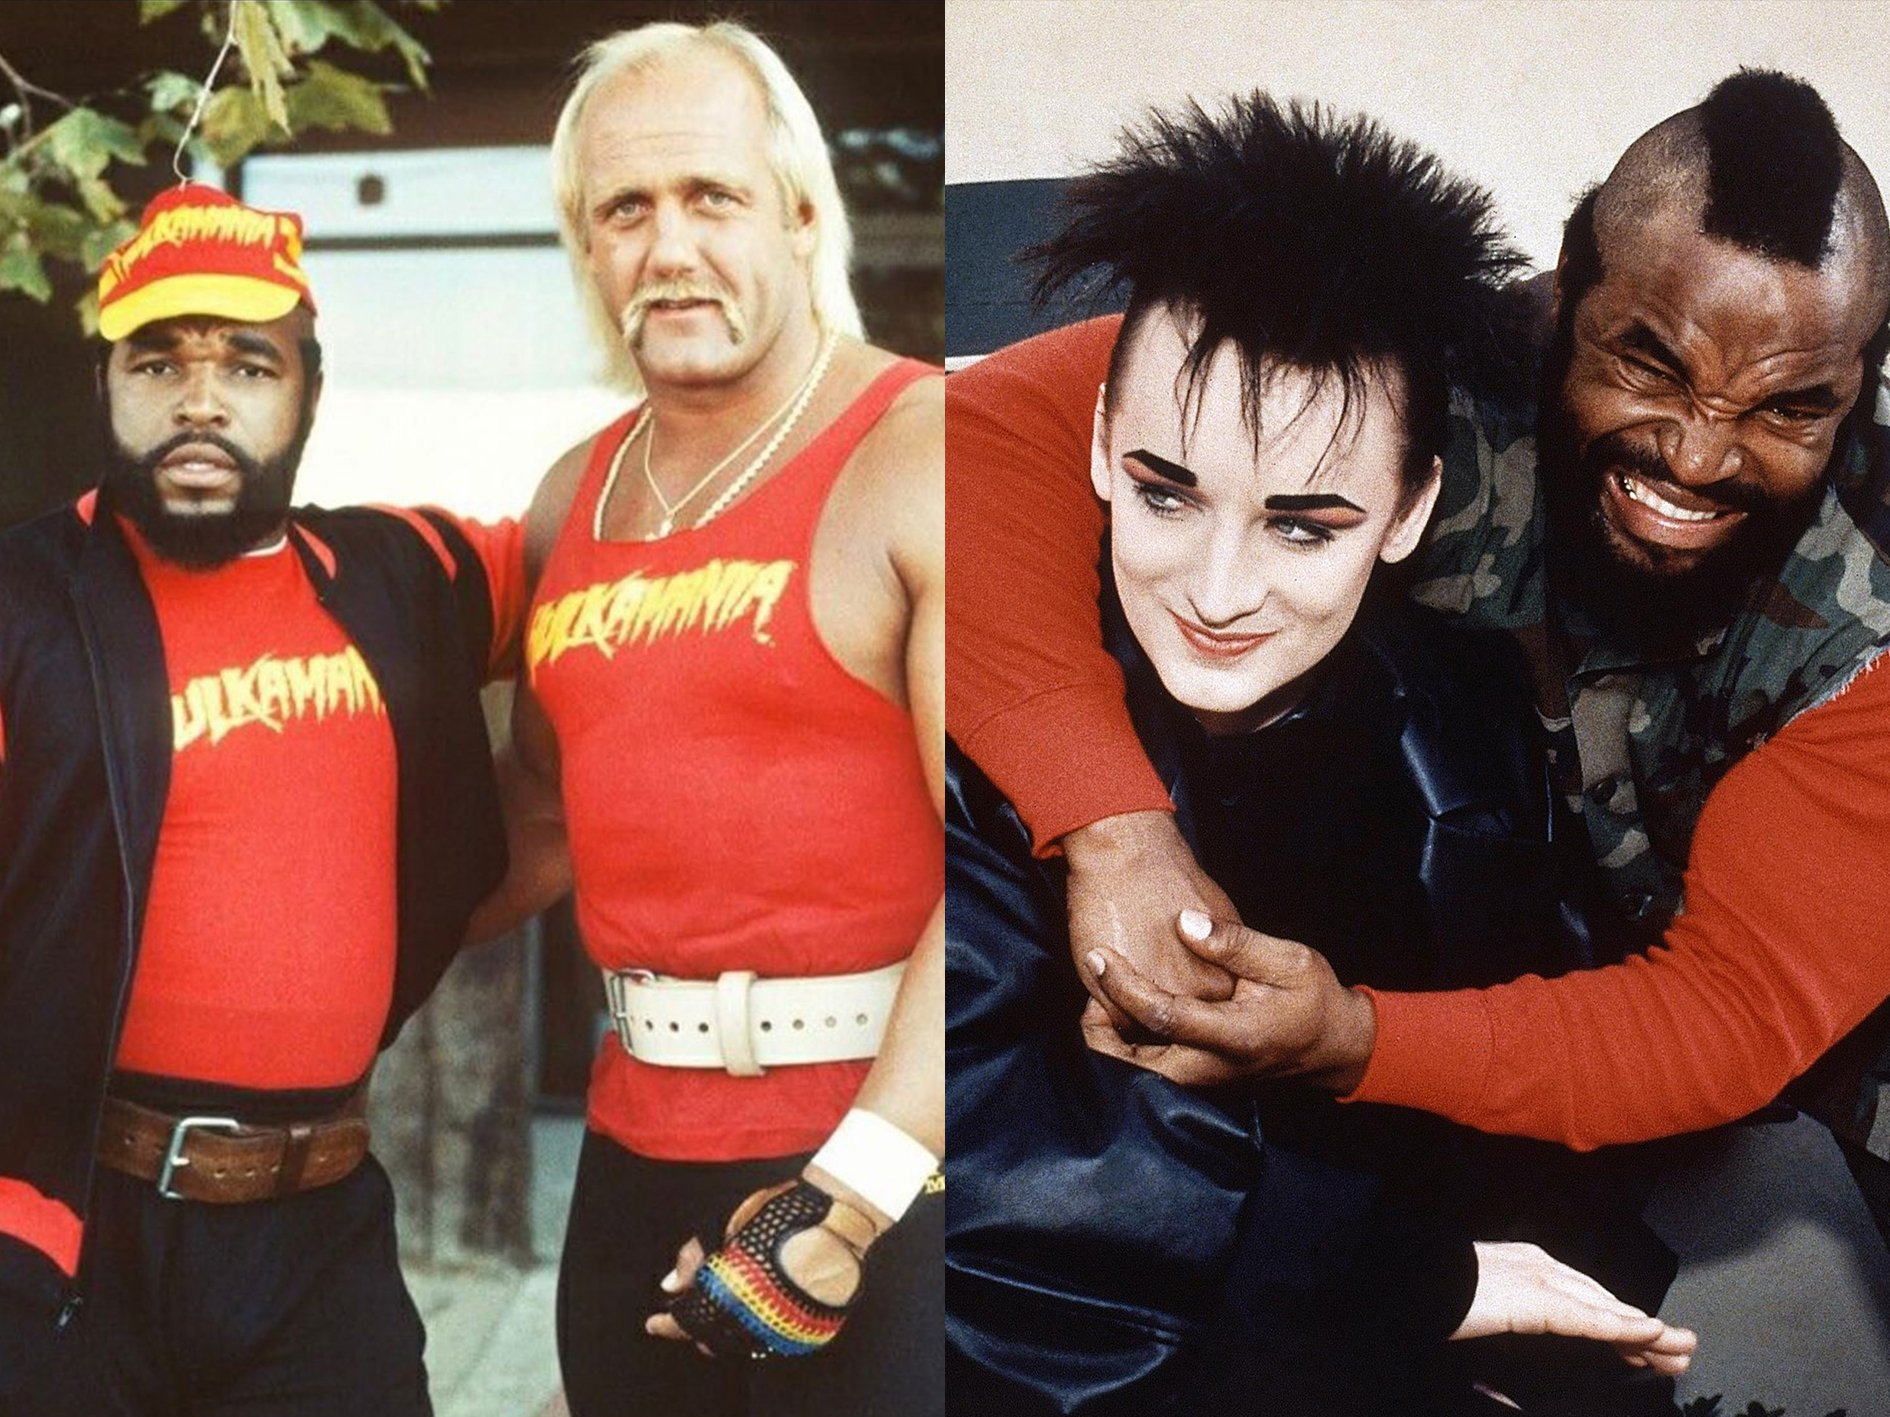 A Team Hulk Hogan Boy George 20 Things You Probably Didn't Know About The A-Team